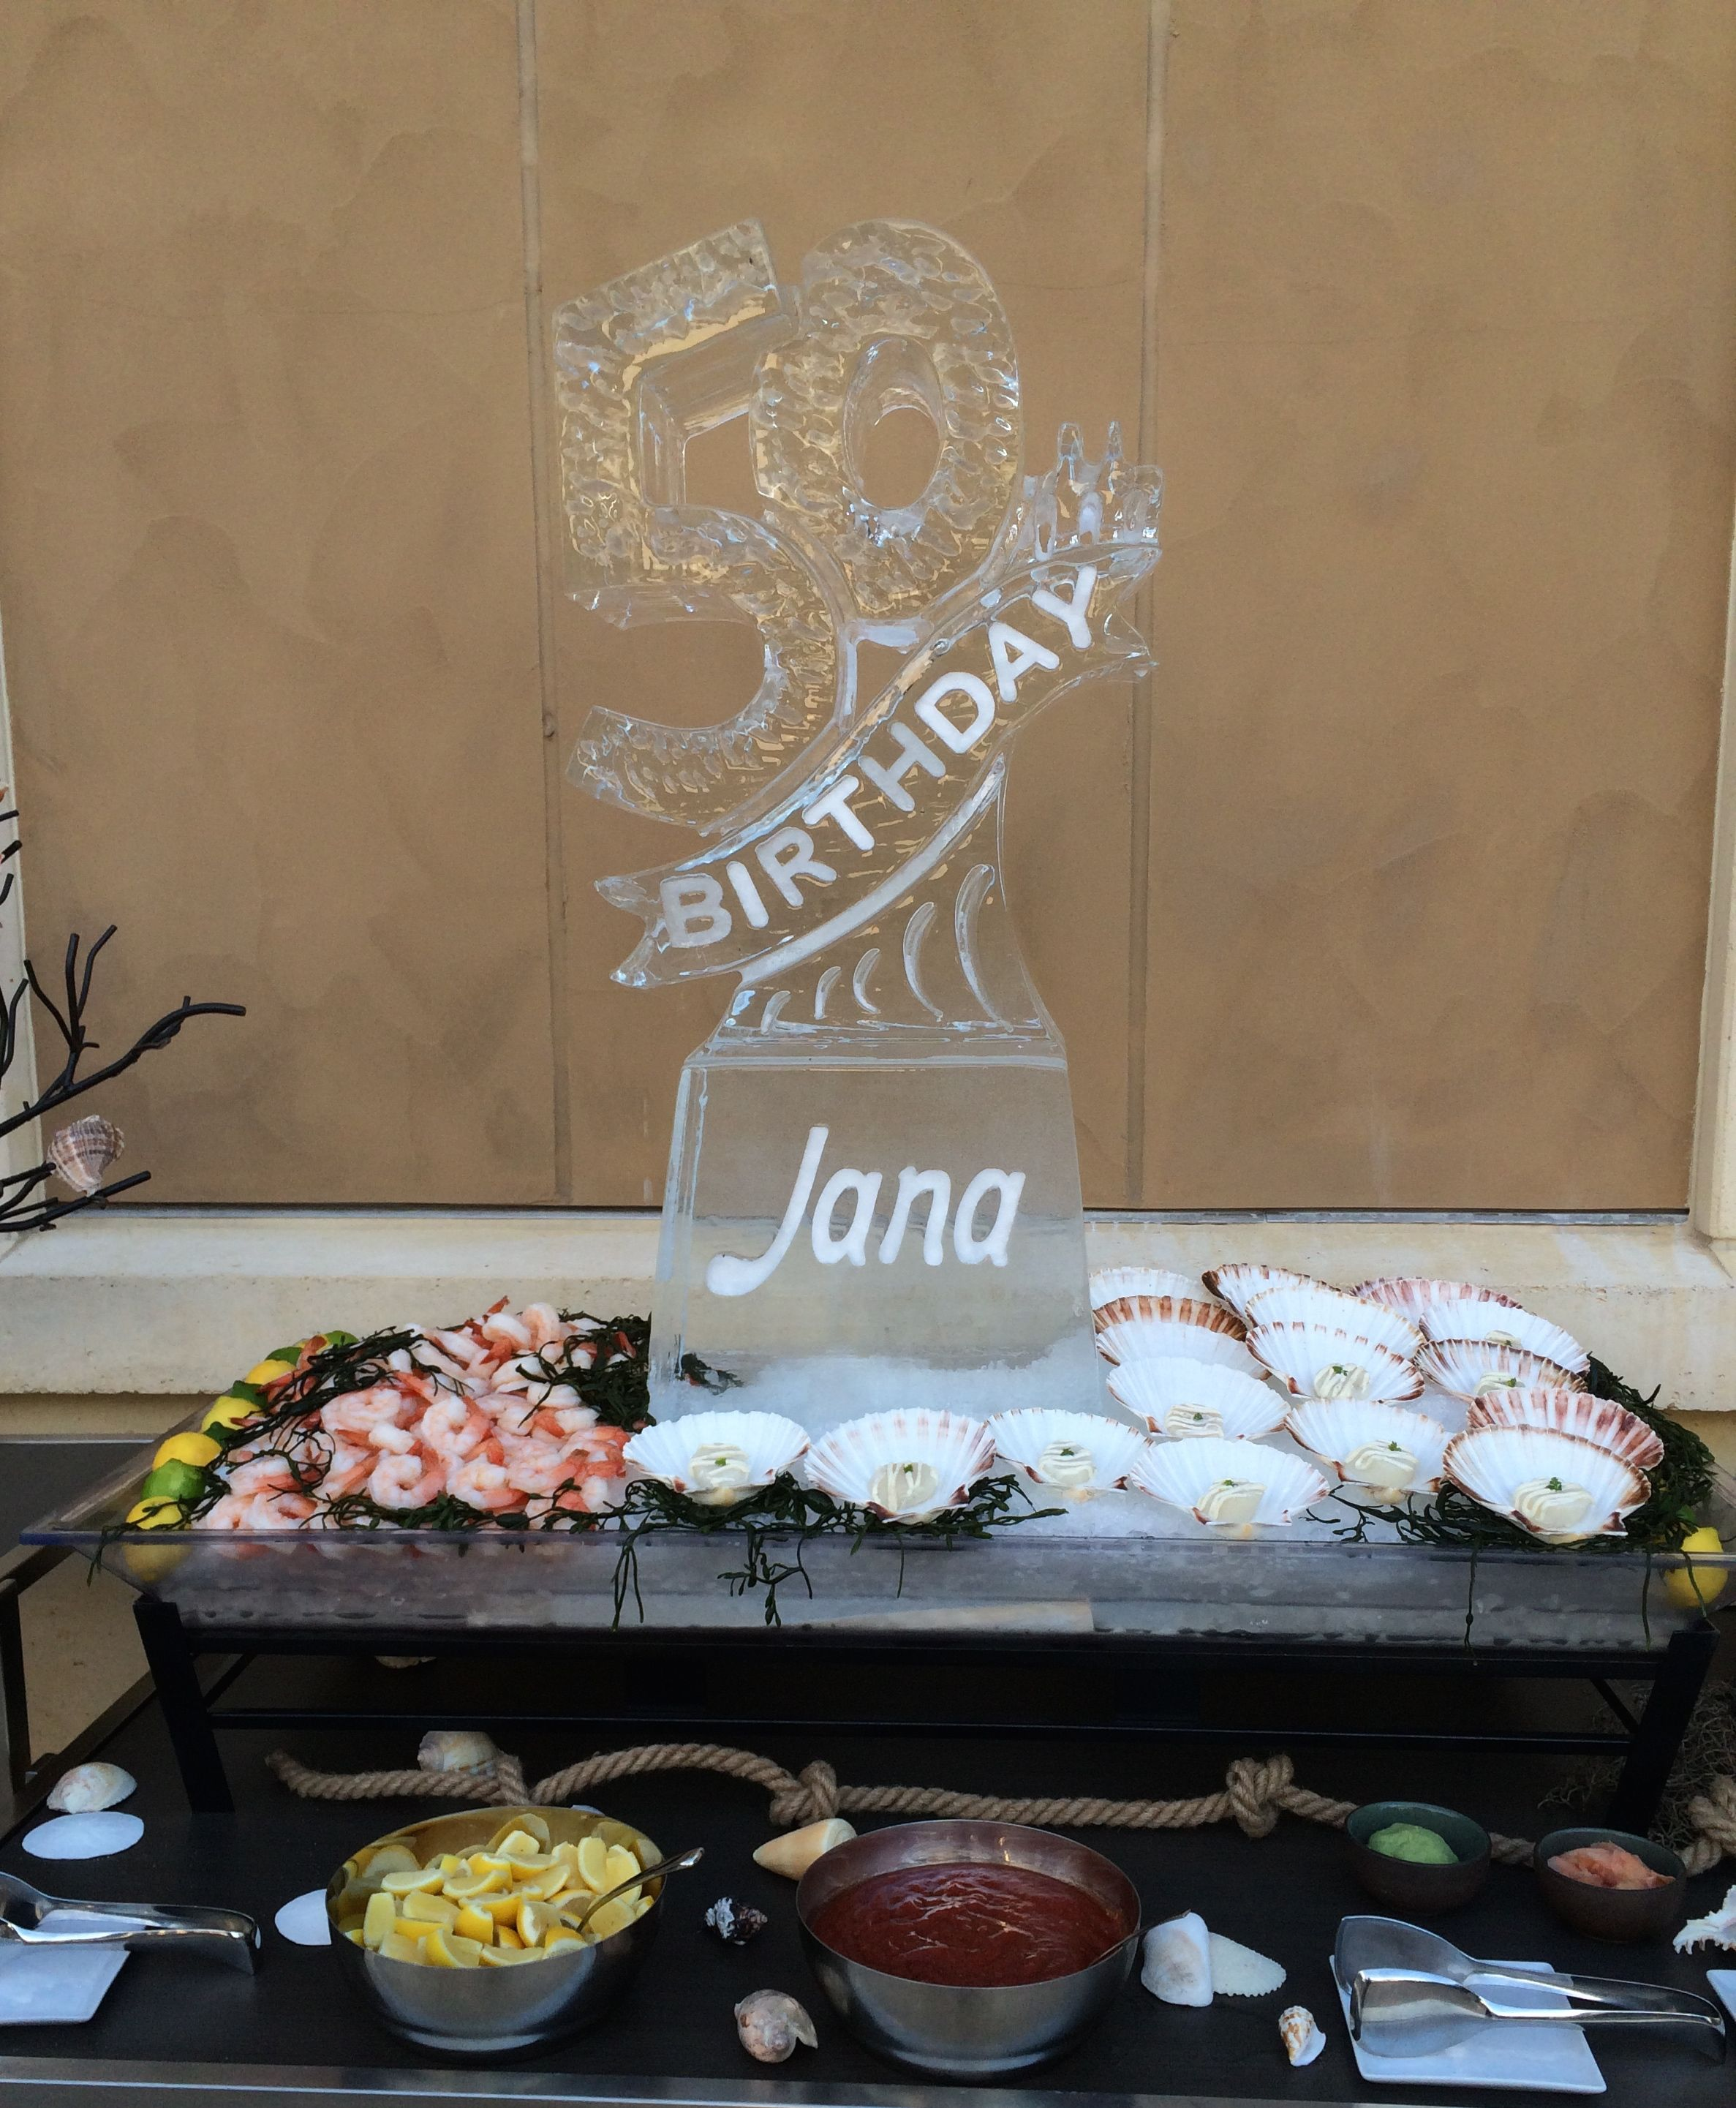 A 50th Birthday Ice Sculpture For A Party. #icesculptures